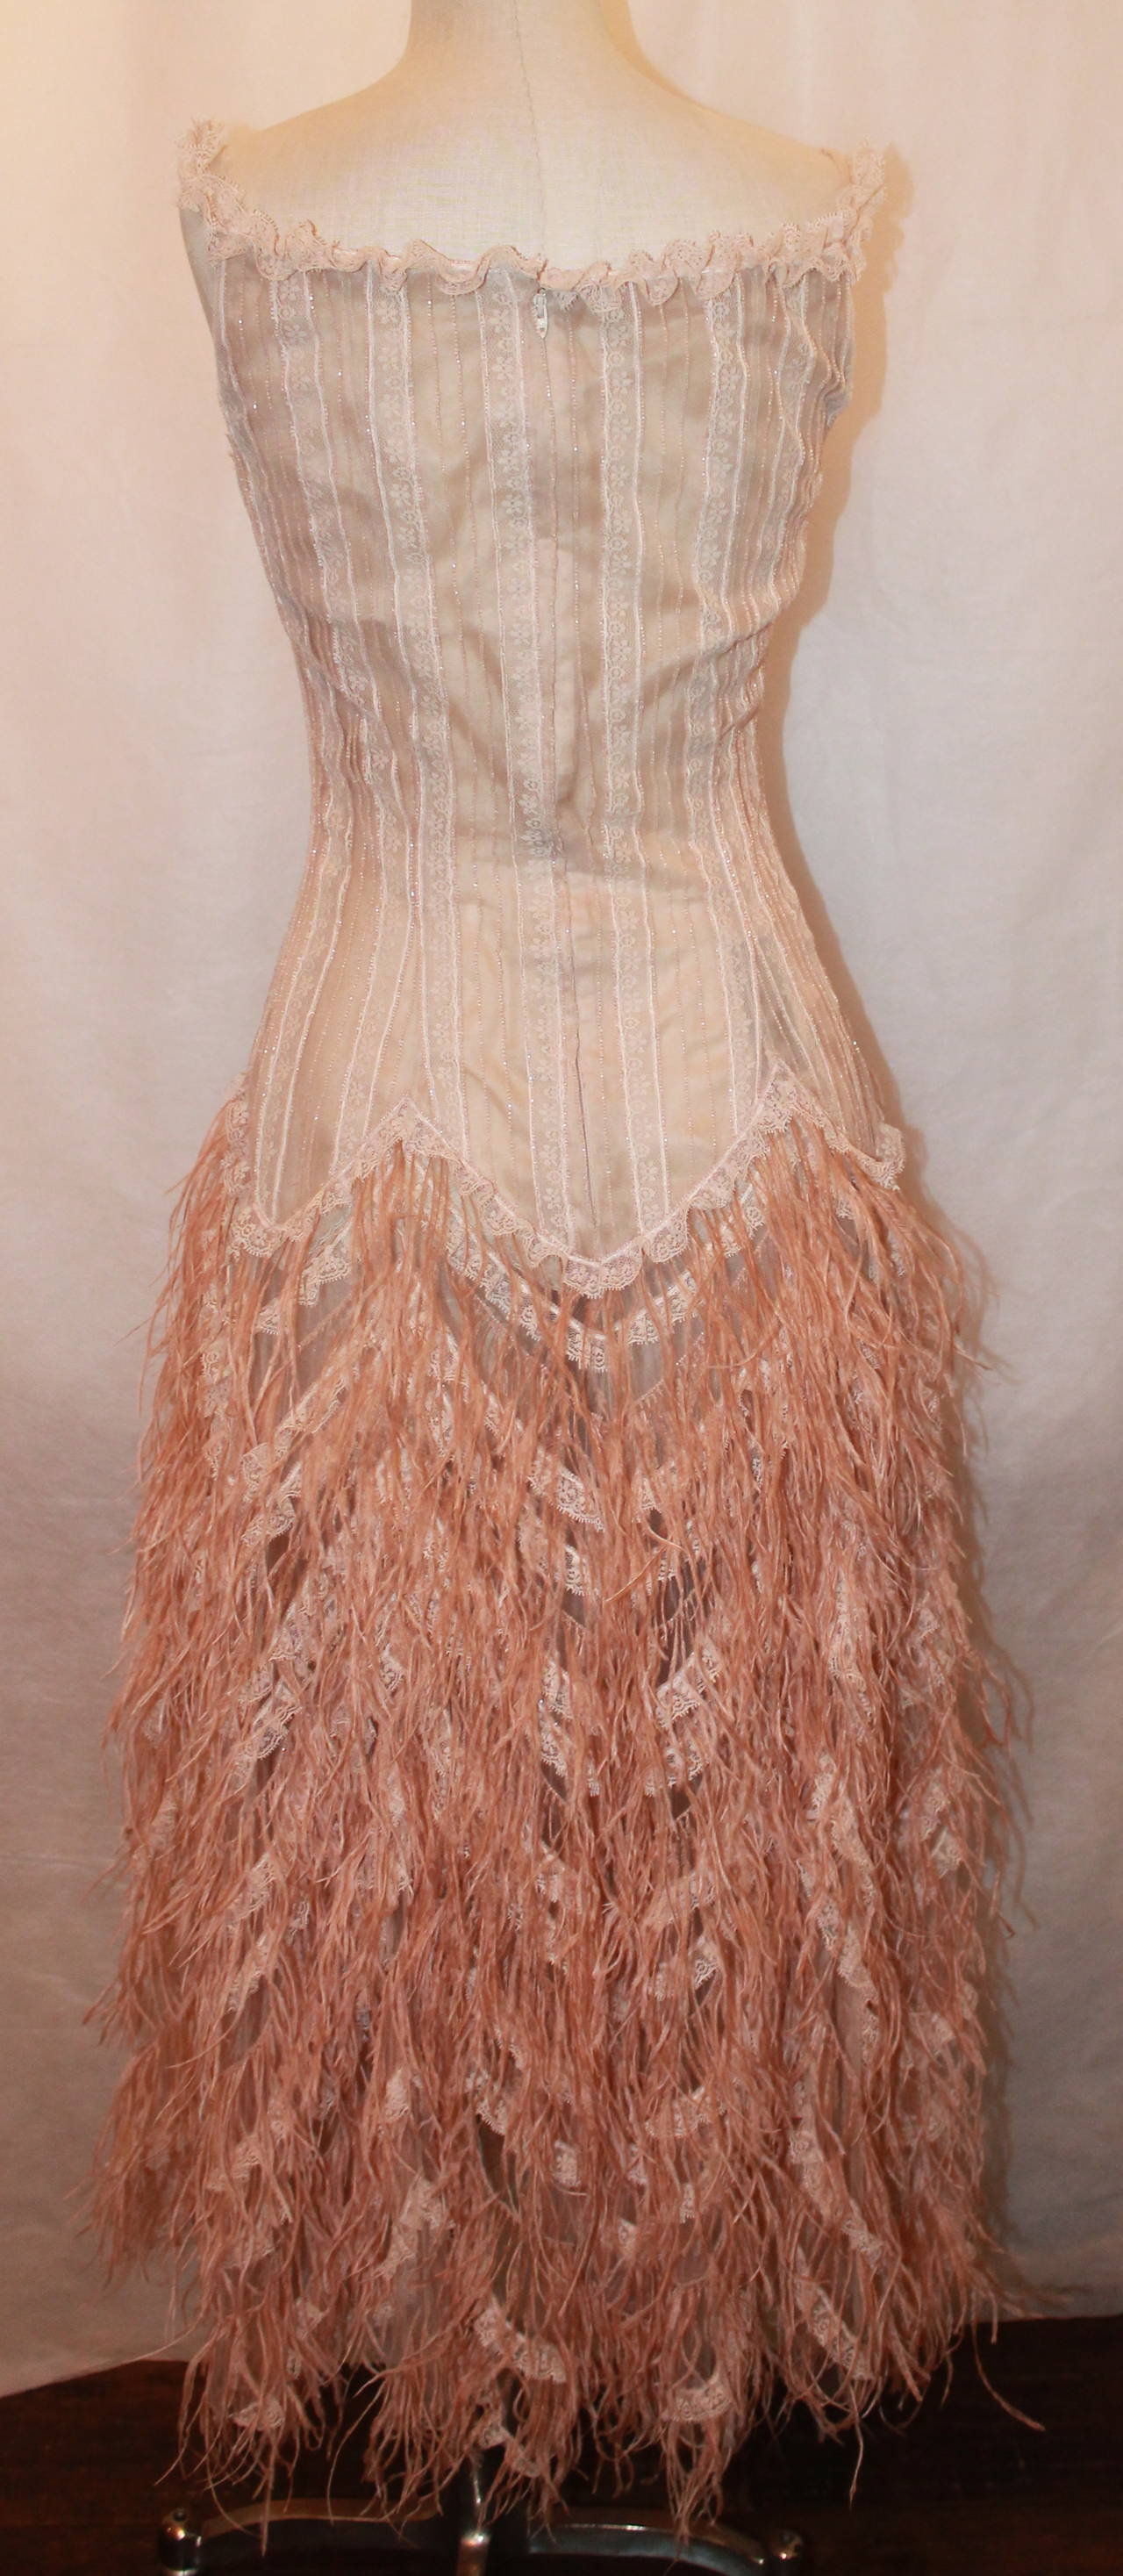 Women's Oscar de la Renta Blush Lace Beaded Gown with Ostrich Feathers & Shawl - M For Sale